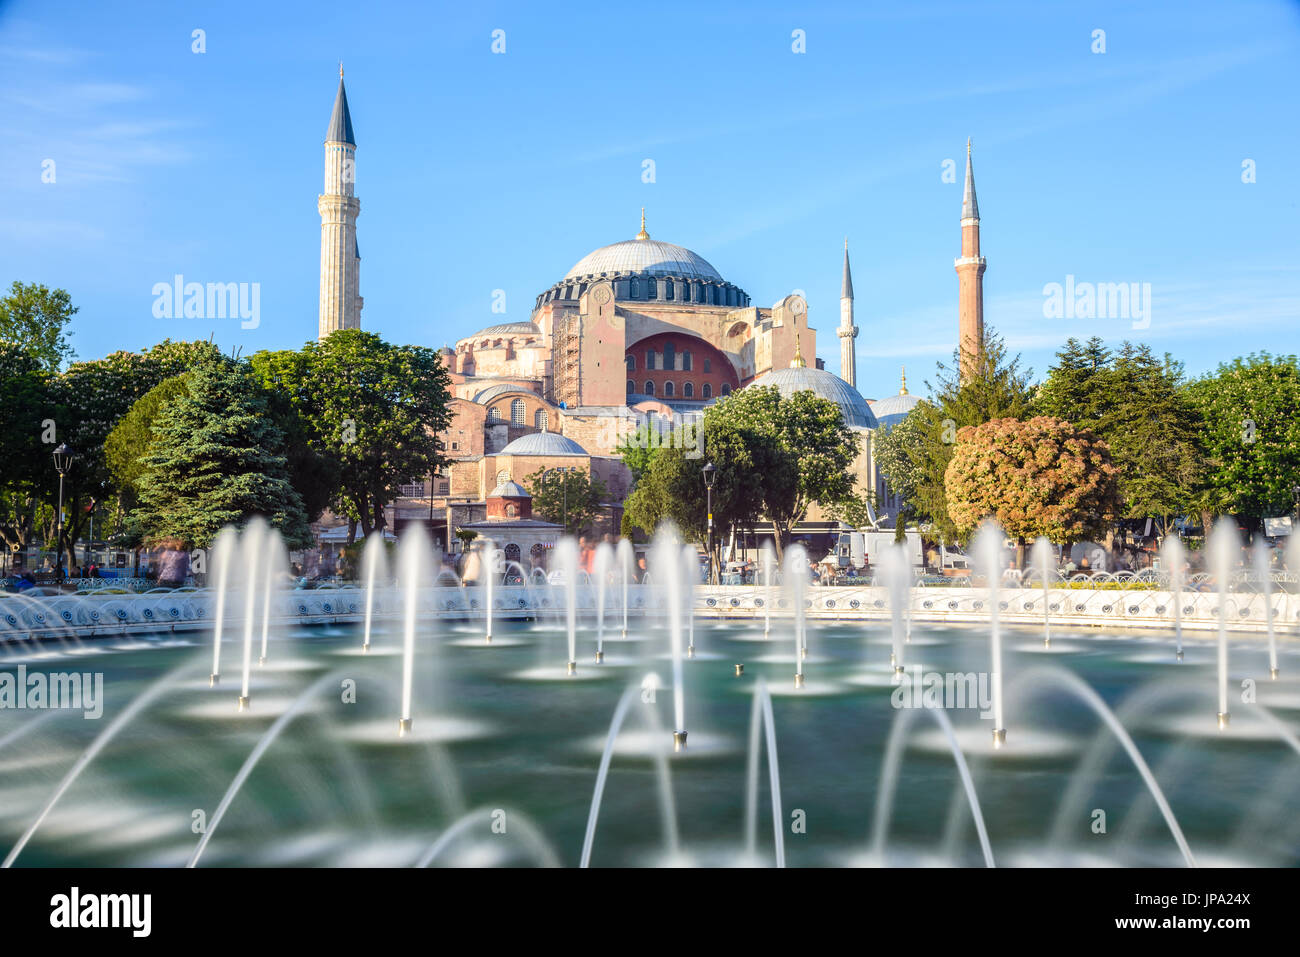 Hagia Sophia with fountain in the foreground, Sultan Ahmet Park, Istanbul, Turkey - Stock Image